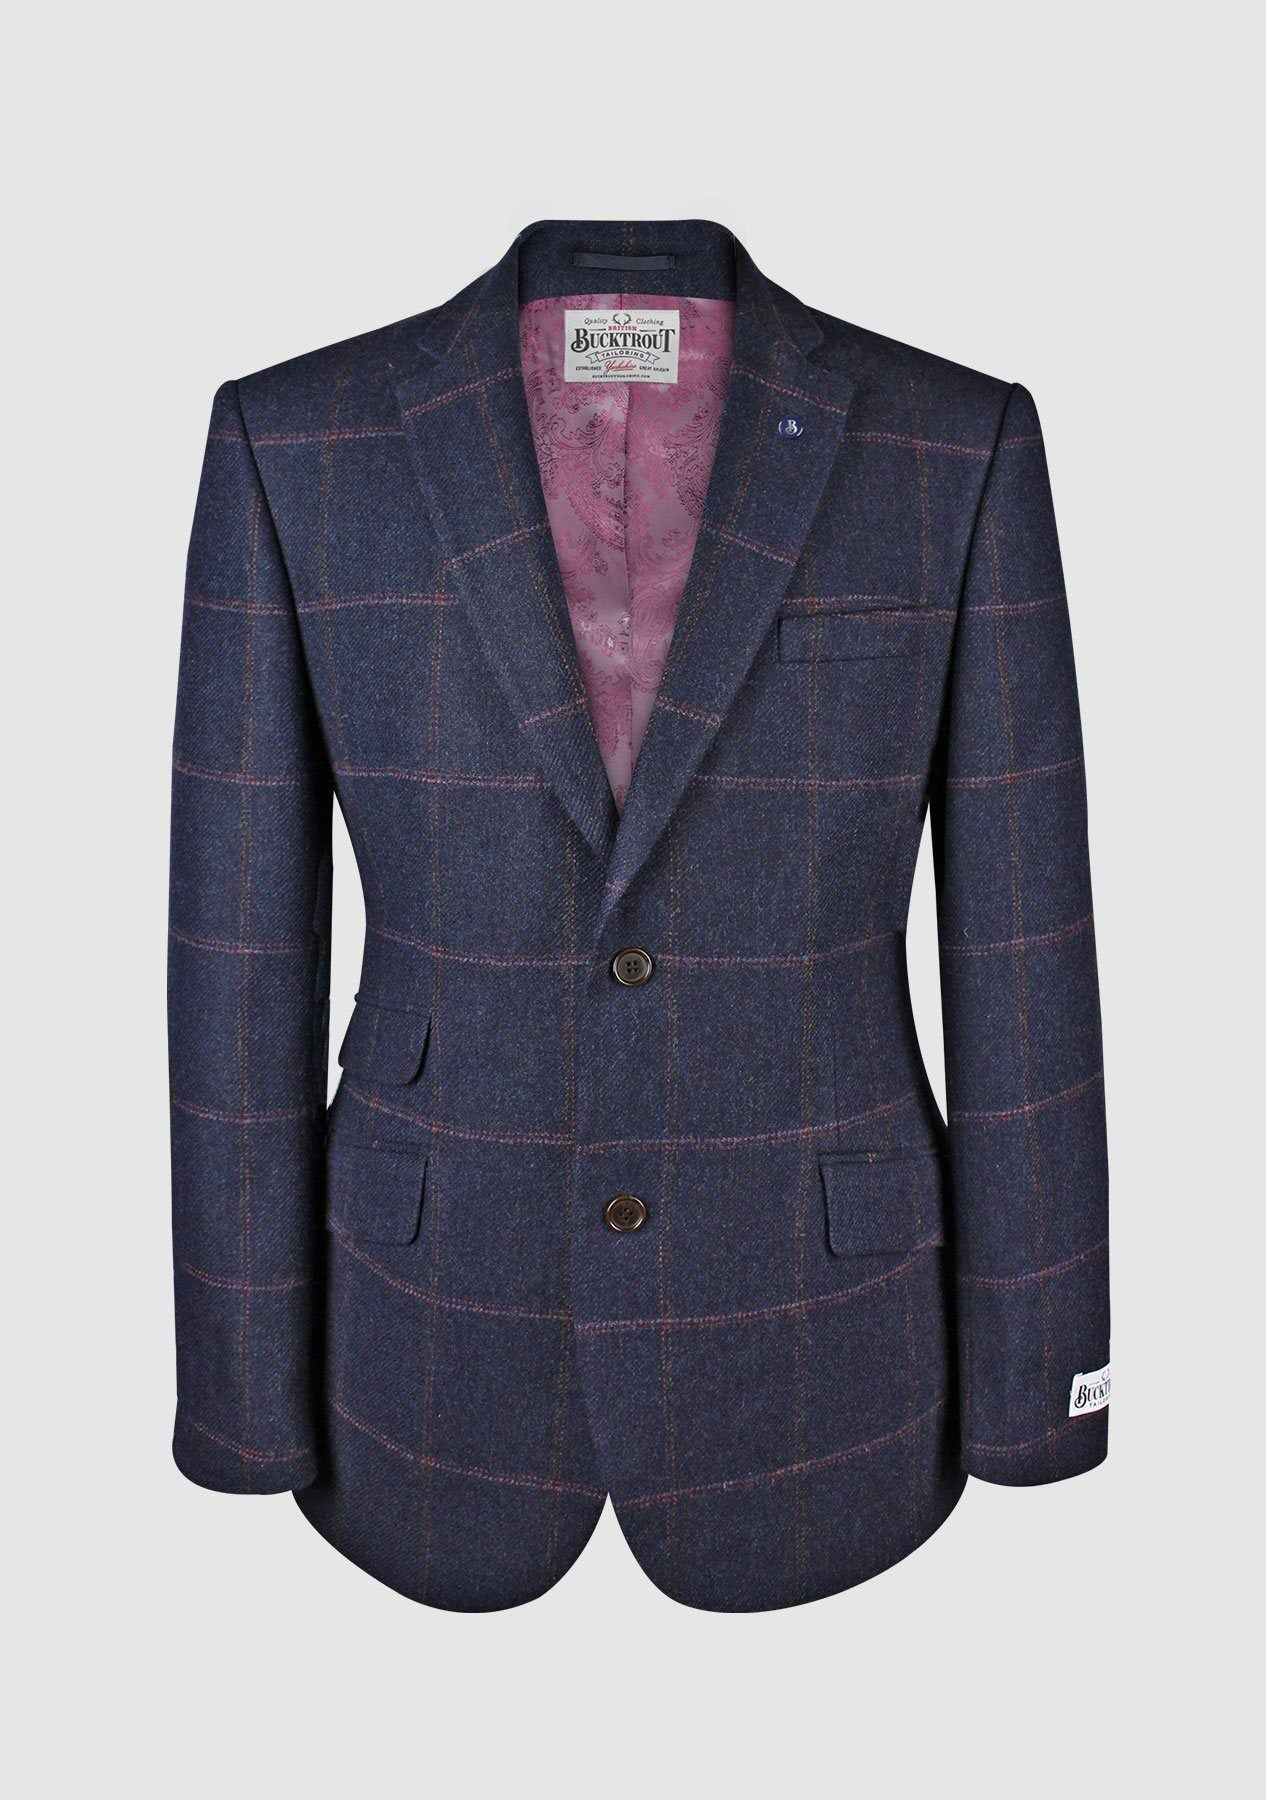 Image of   Patrick Jacket Yorkshire Tweed, navy/pink herringbone